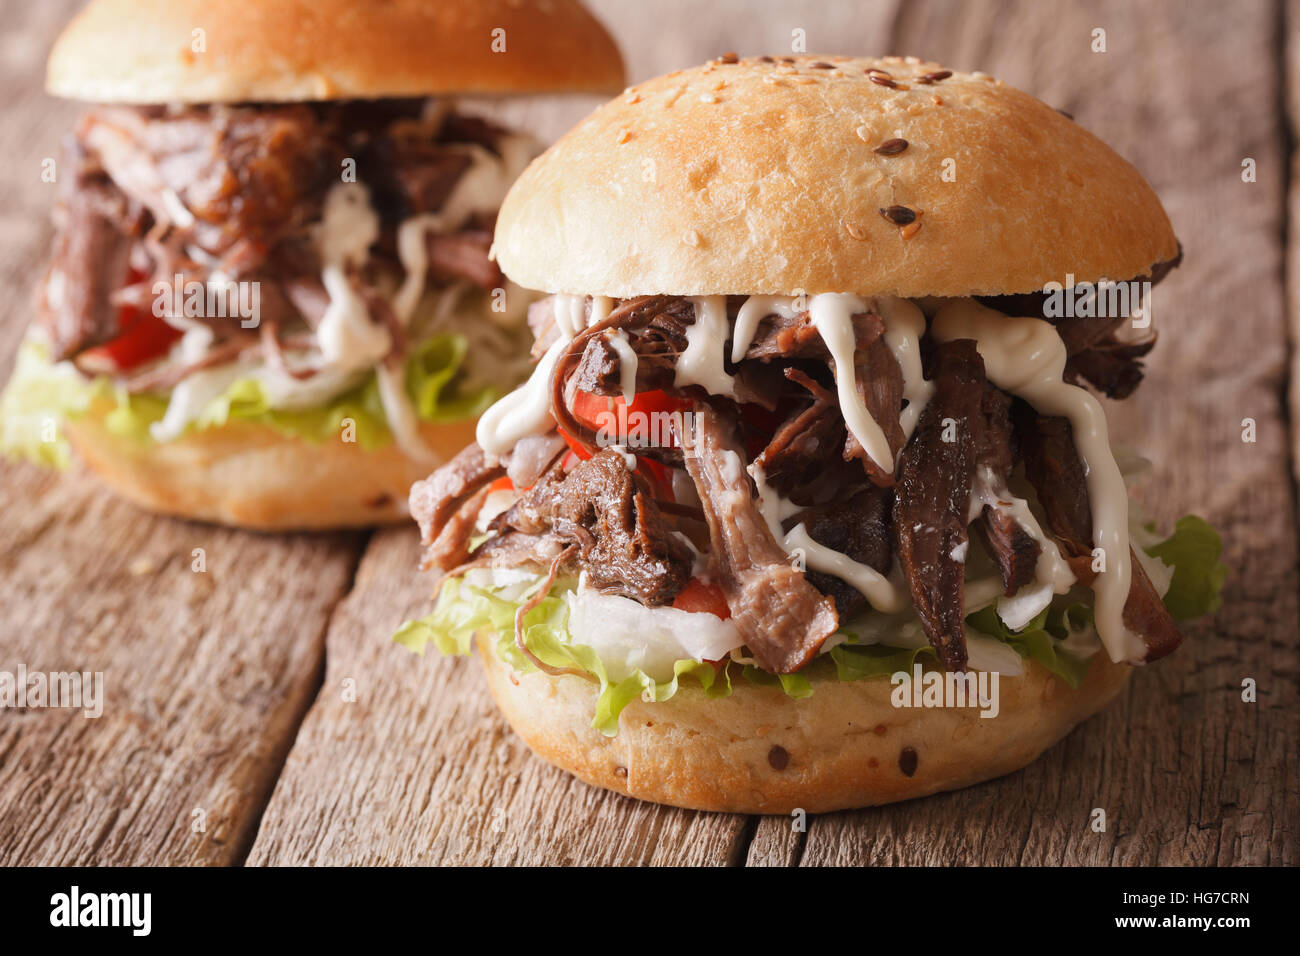 Pulled pork sandwich with vegetables and sauce close-up on the table. horizontal - Stock Image